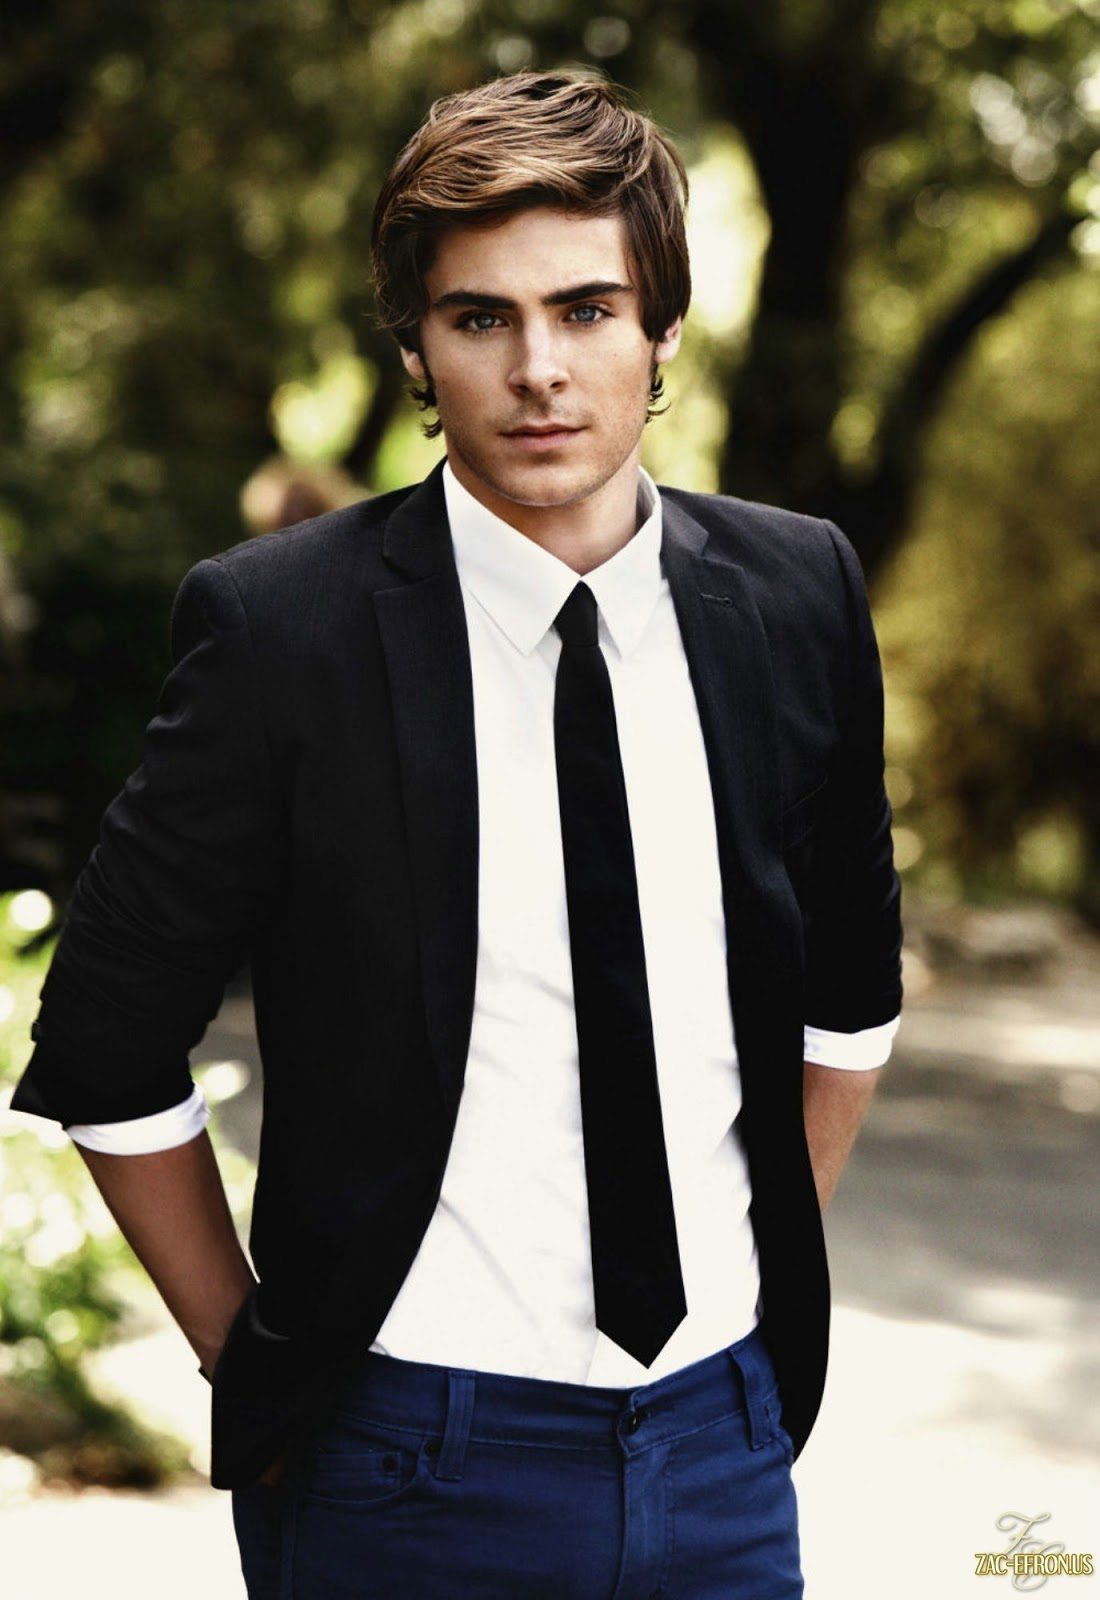 Zac Efron Wallpapers |...